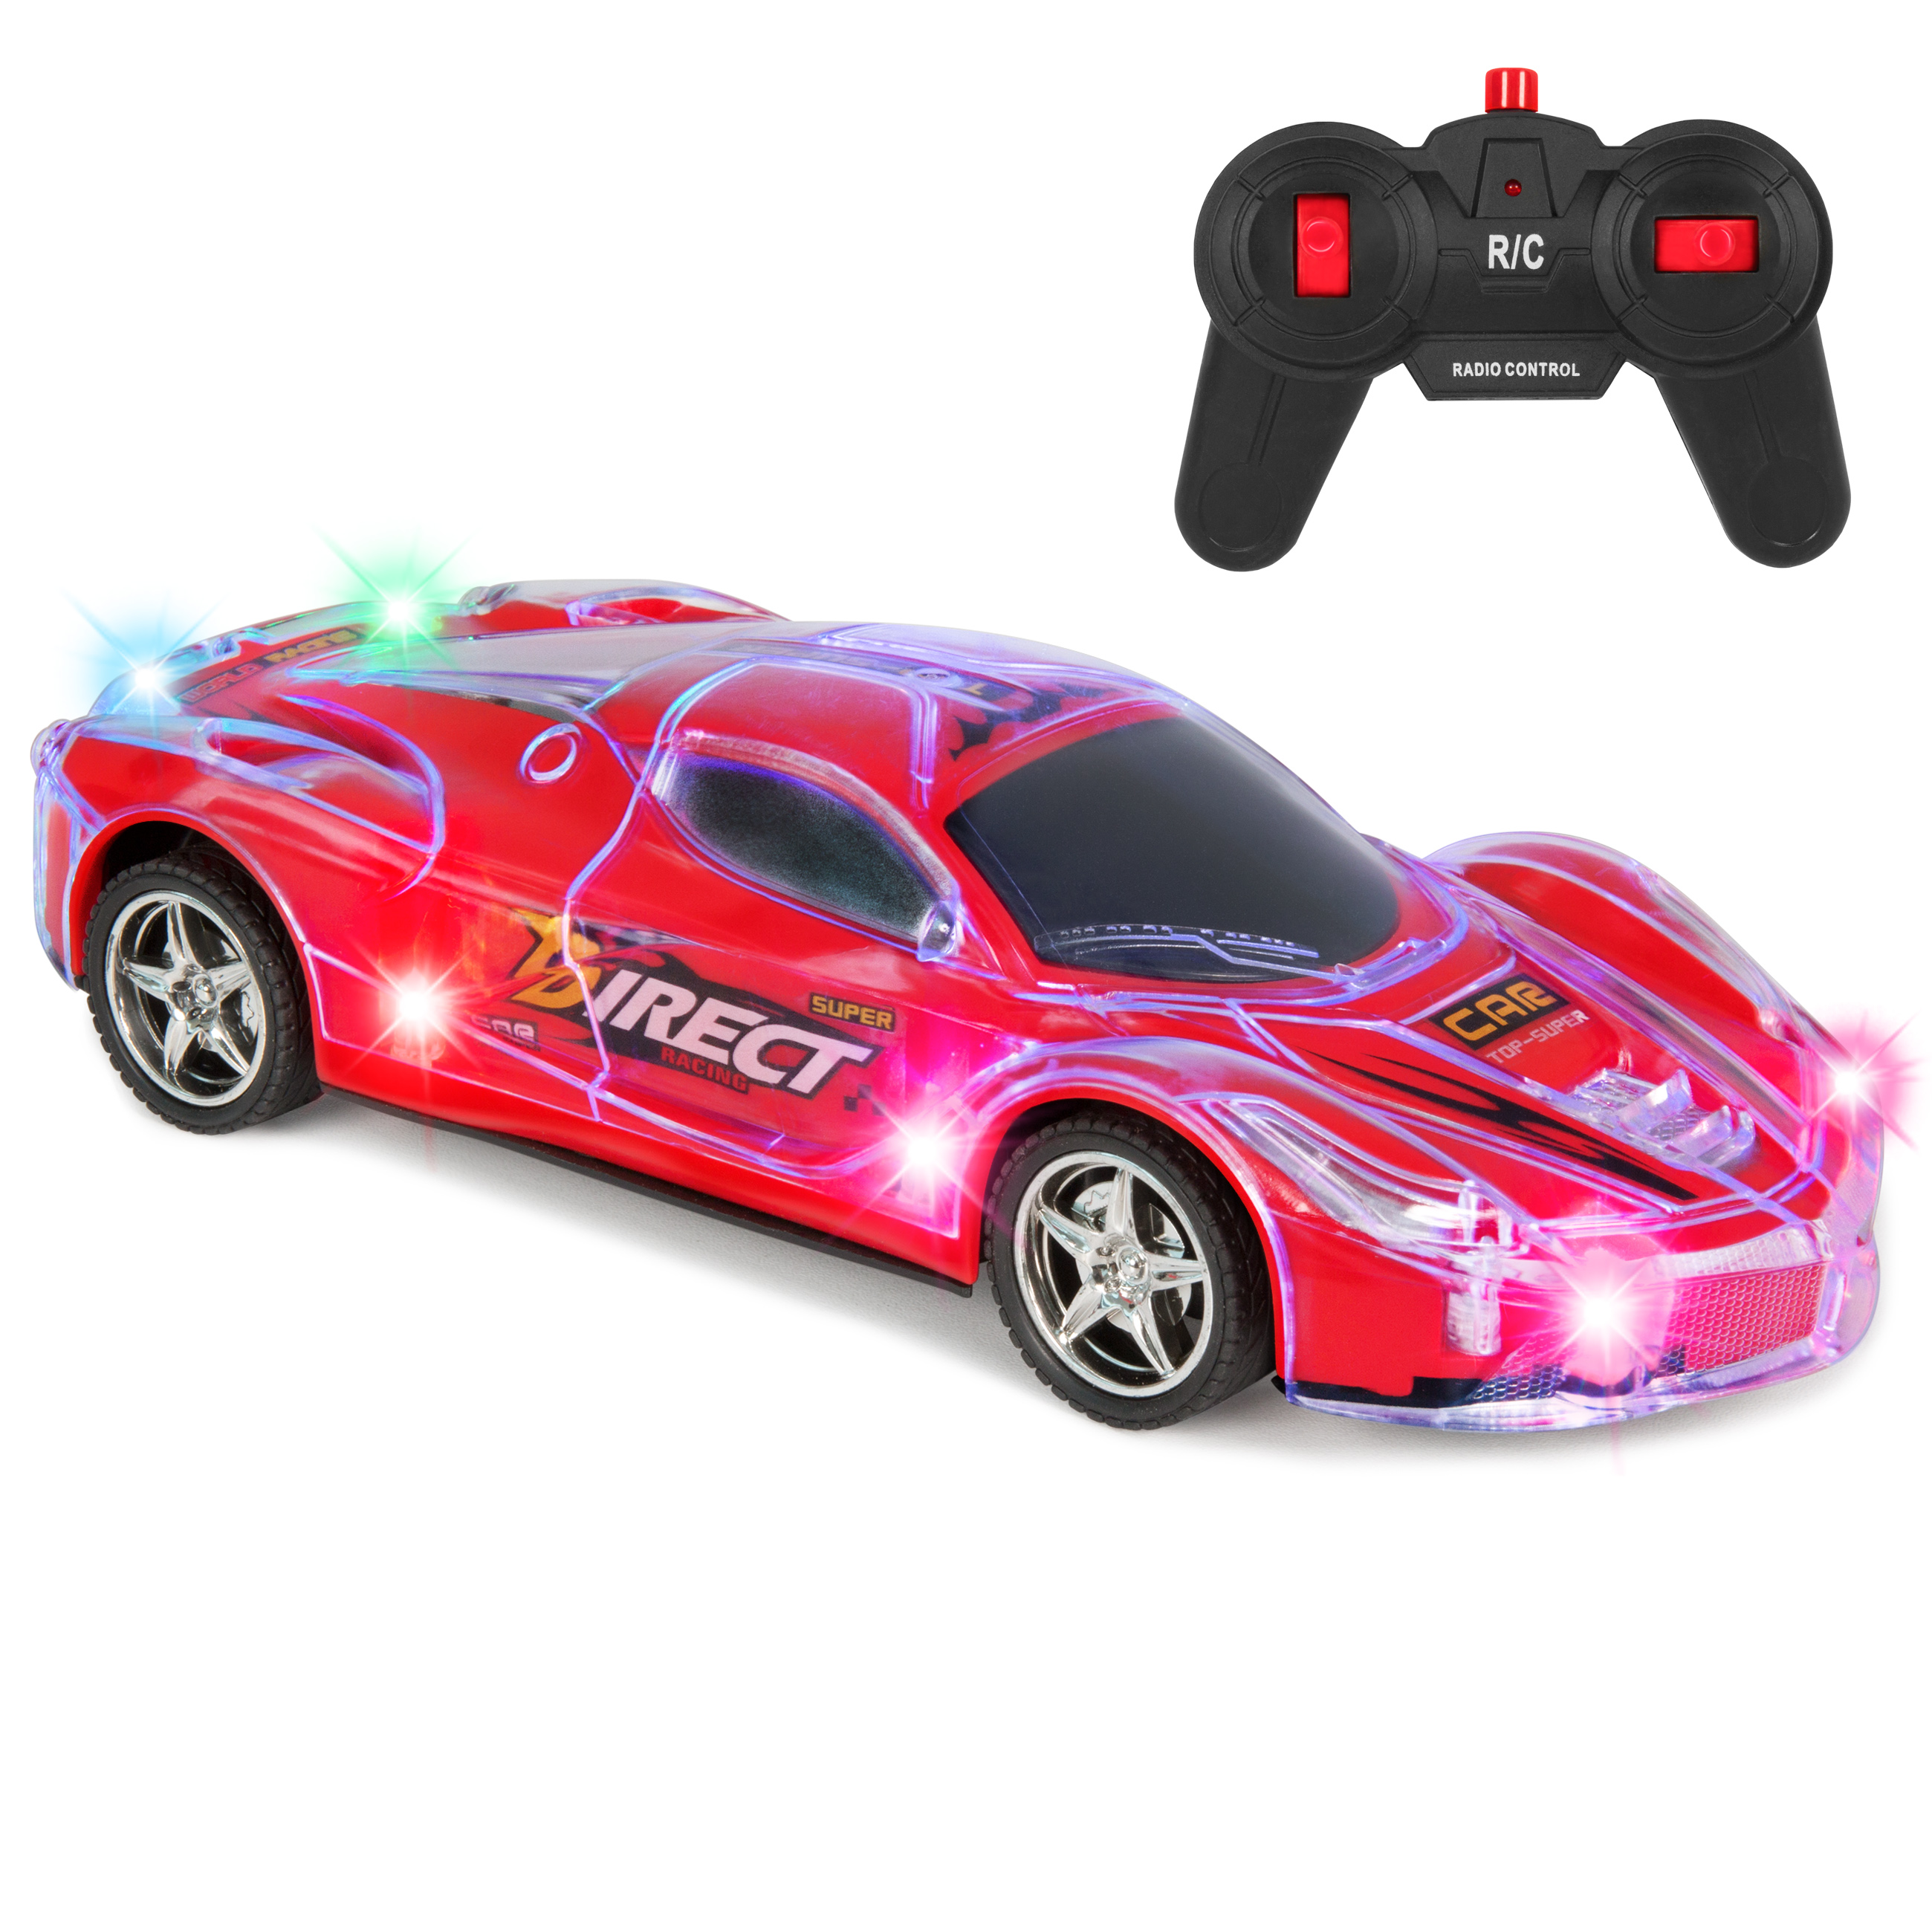 Best Choice Products Toy 27Mhz Remote Control Light Up RC Racing Car w/ Flashing LED Lights- Red